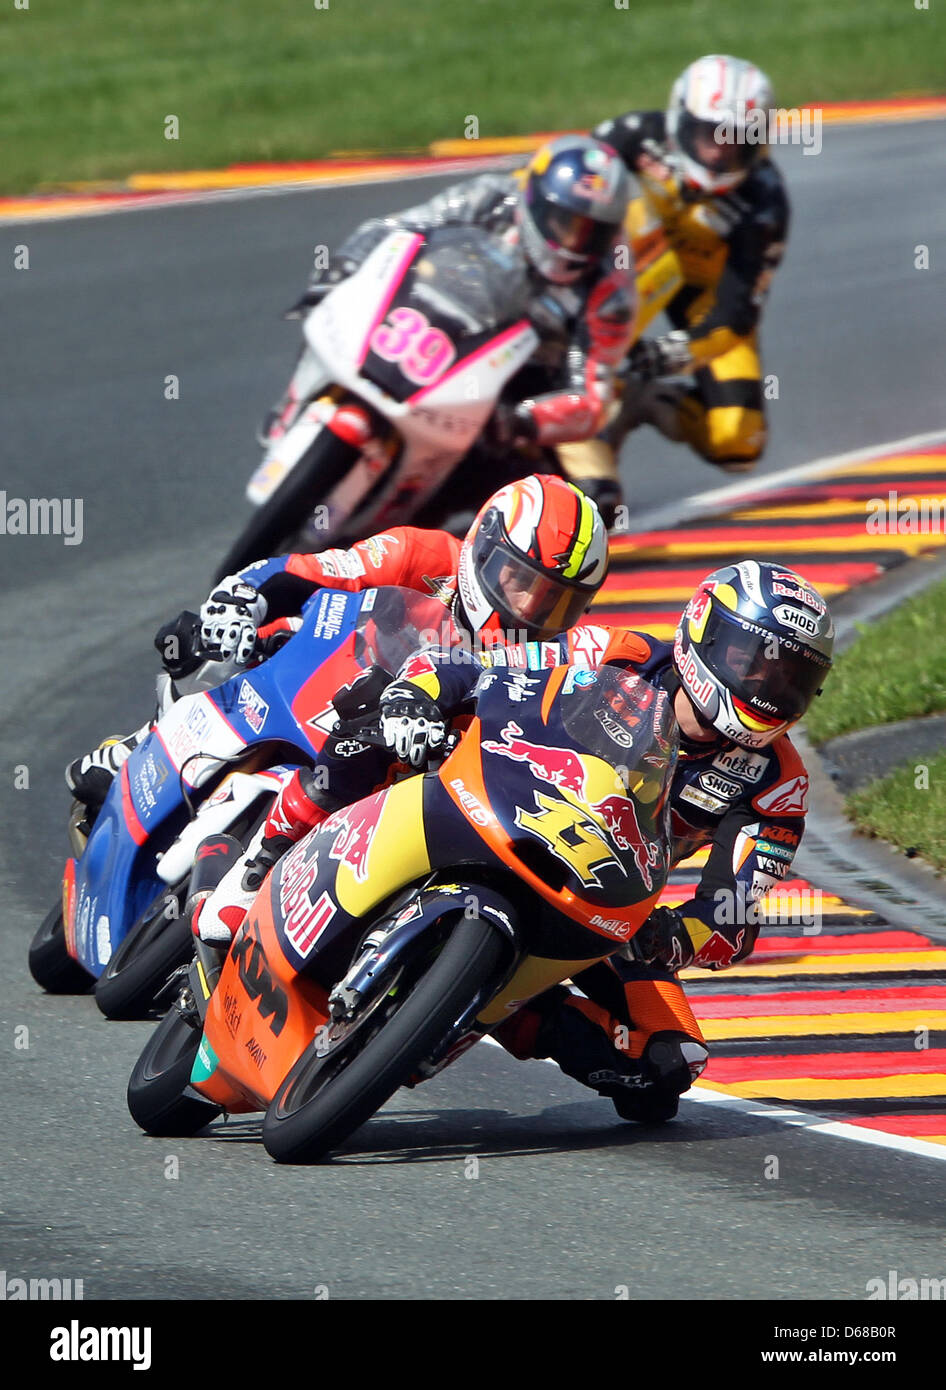 German rider Sandro Cortese of Team Red Bull KTM leads the field ahead of French MotoGP rider Alexis Masbou of Team - Stock Image